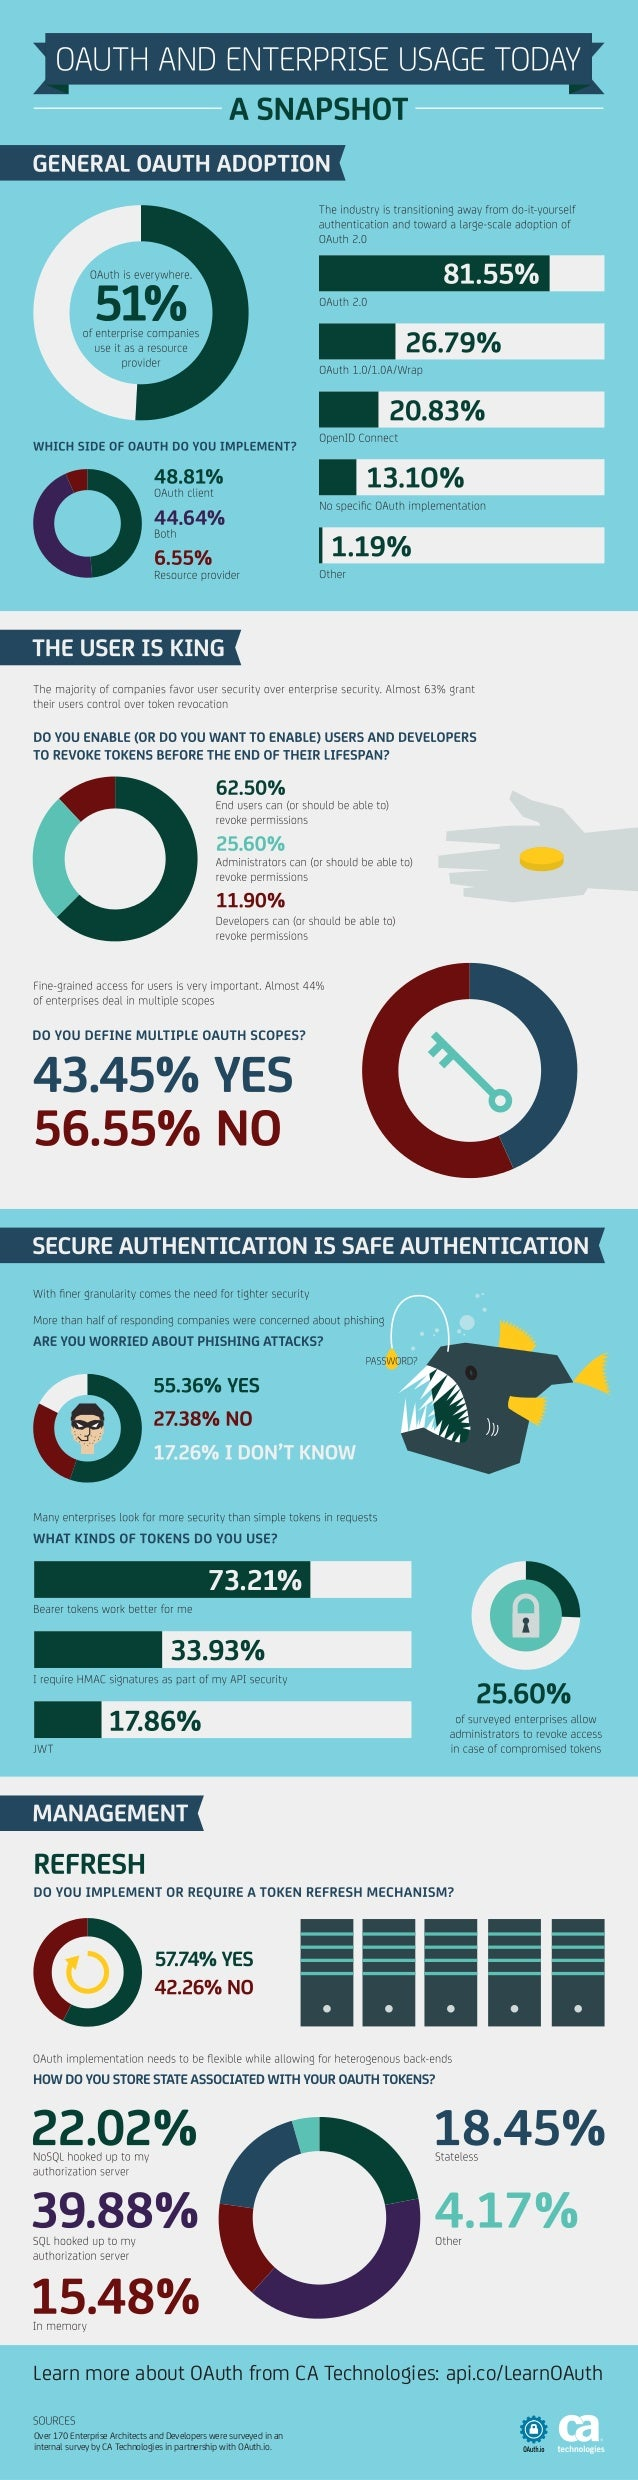 Learn more about OAuth from CA Technologies: api.co/LearnOAuth Over 170 Enterprise Architects and Developers were surveyed...